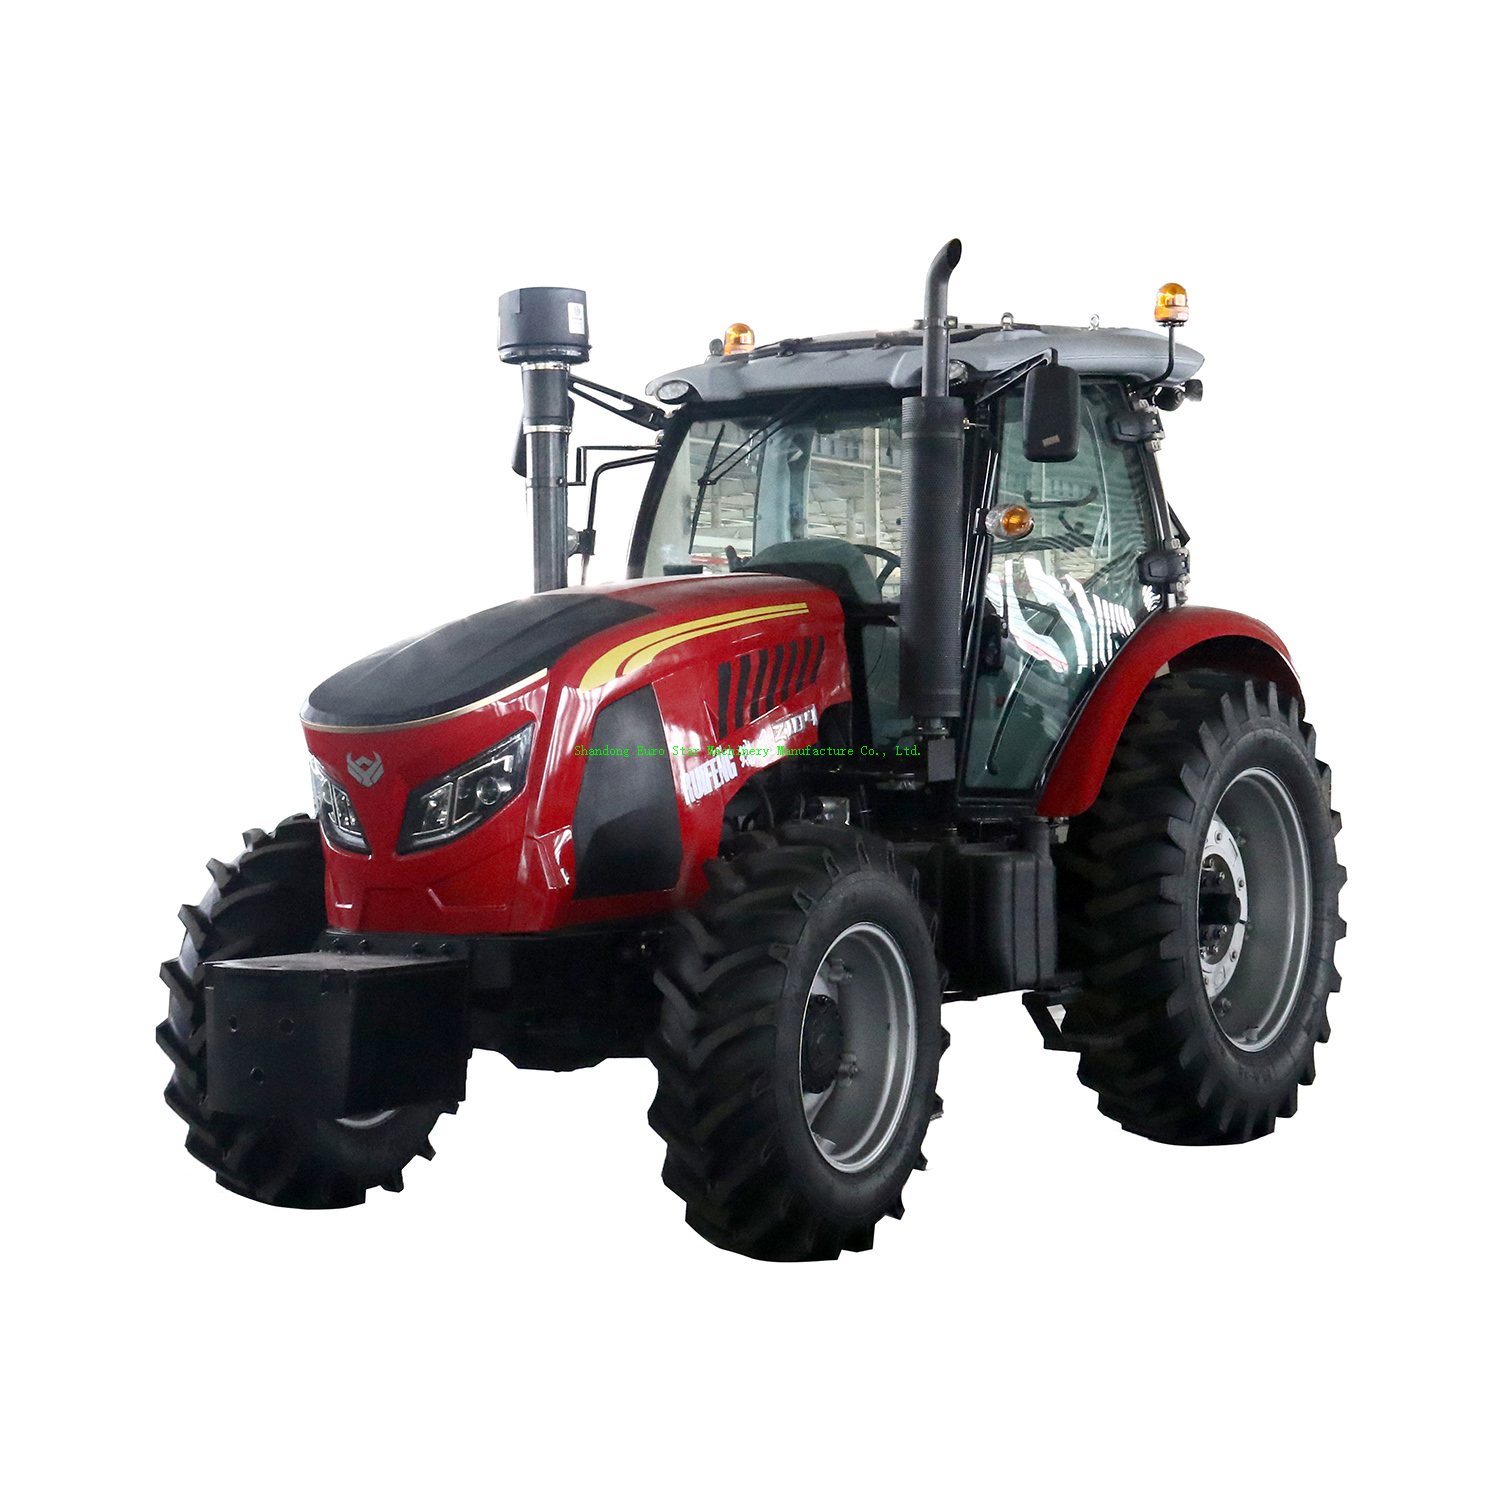 TF 100-165HP Tractor 165HP 2WD Mini Small Four Wheel Farm Crawler Tractor Orchard Paddy Lawn Big Garden Walking Diesel China Agricultural Machinery Tractor